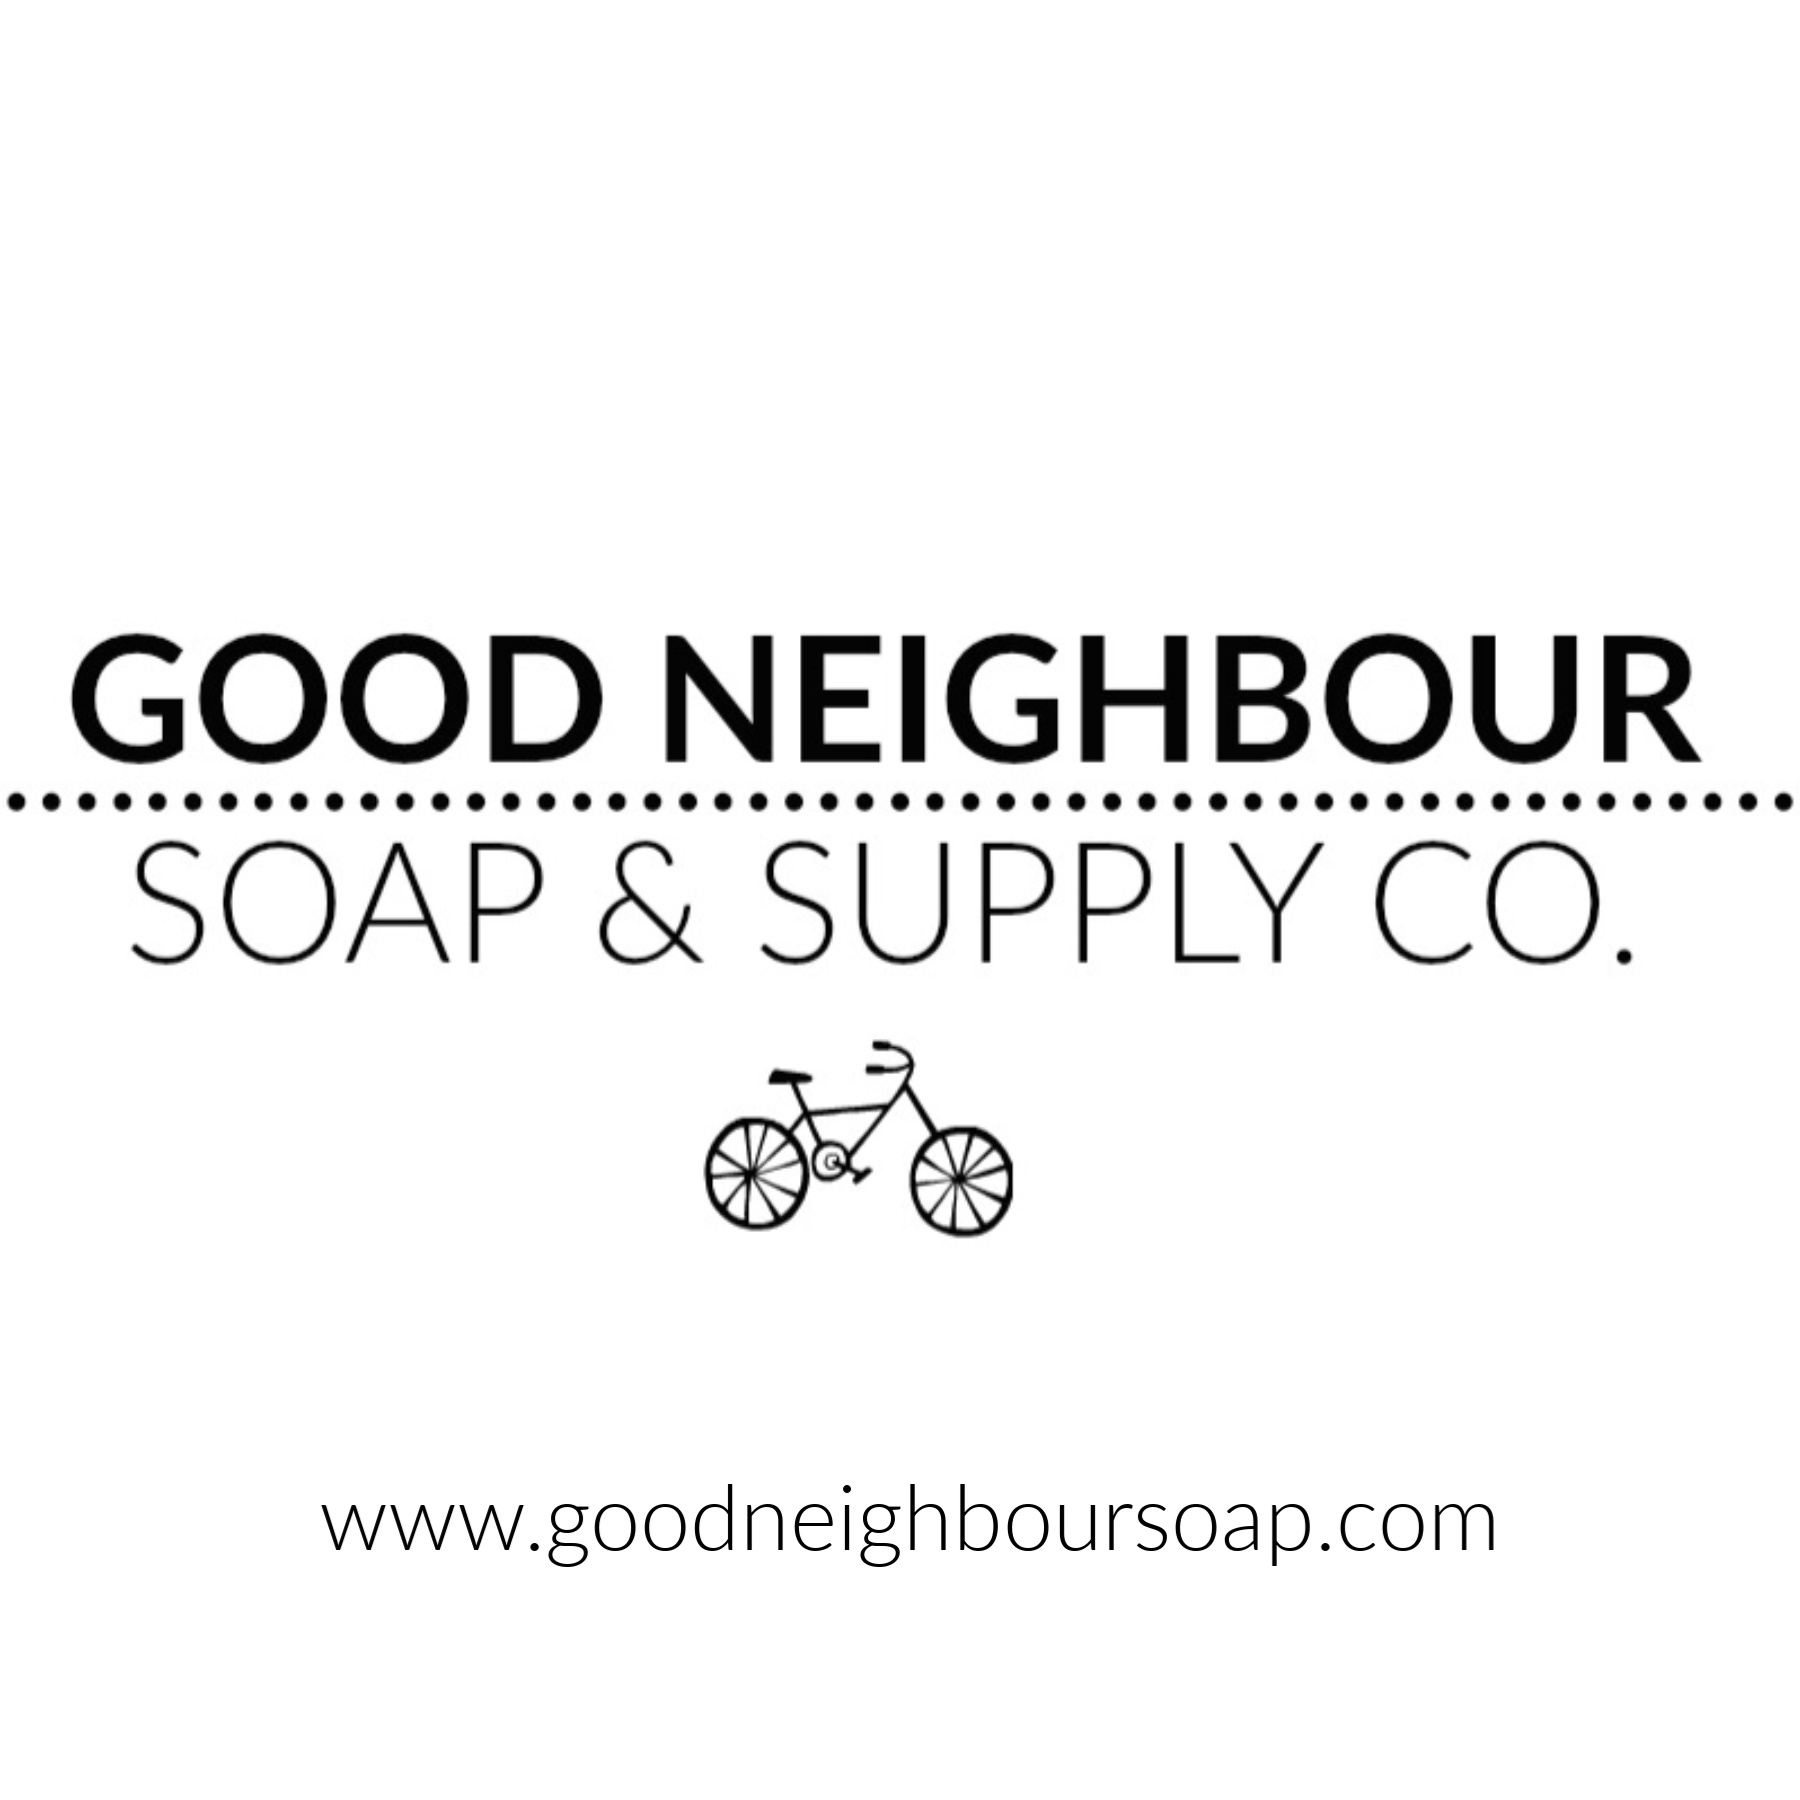 GOOD NEIGHBOUR SOAP & SUPPLY CO.